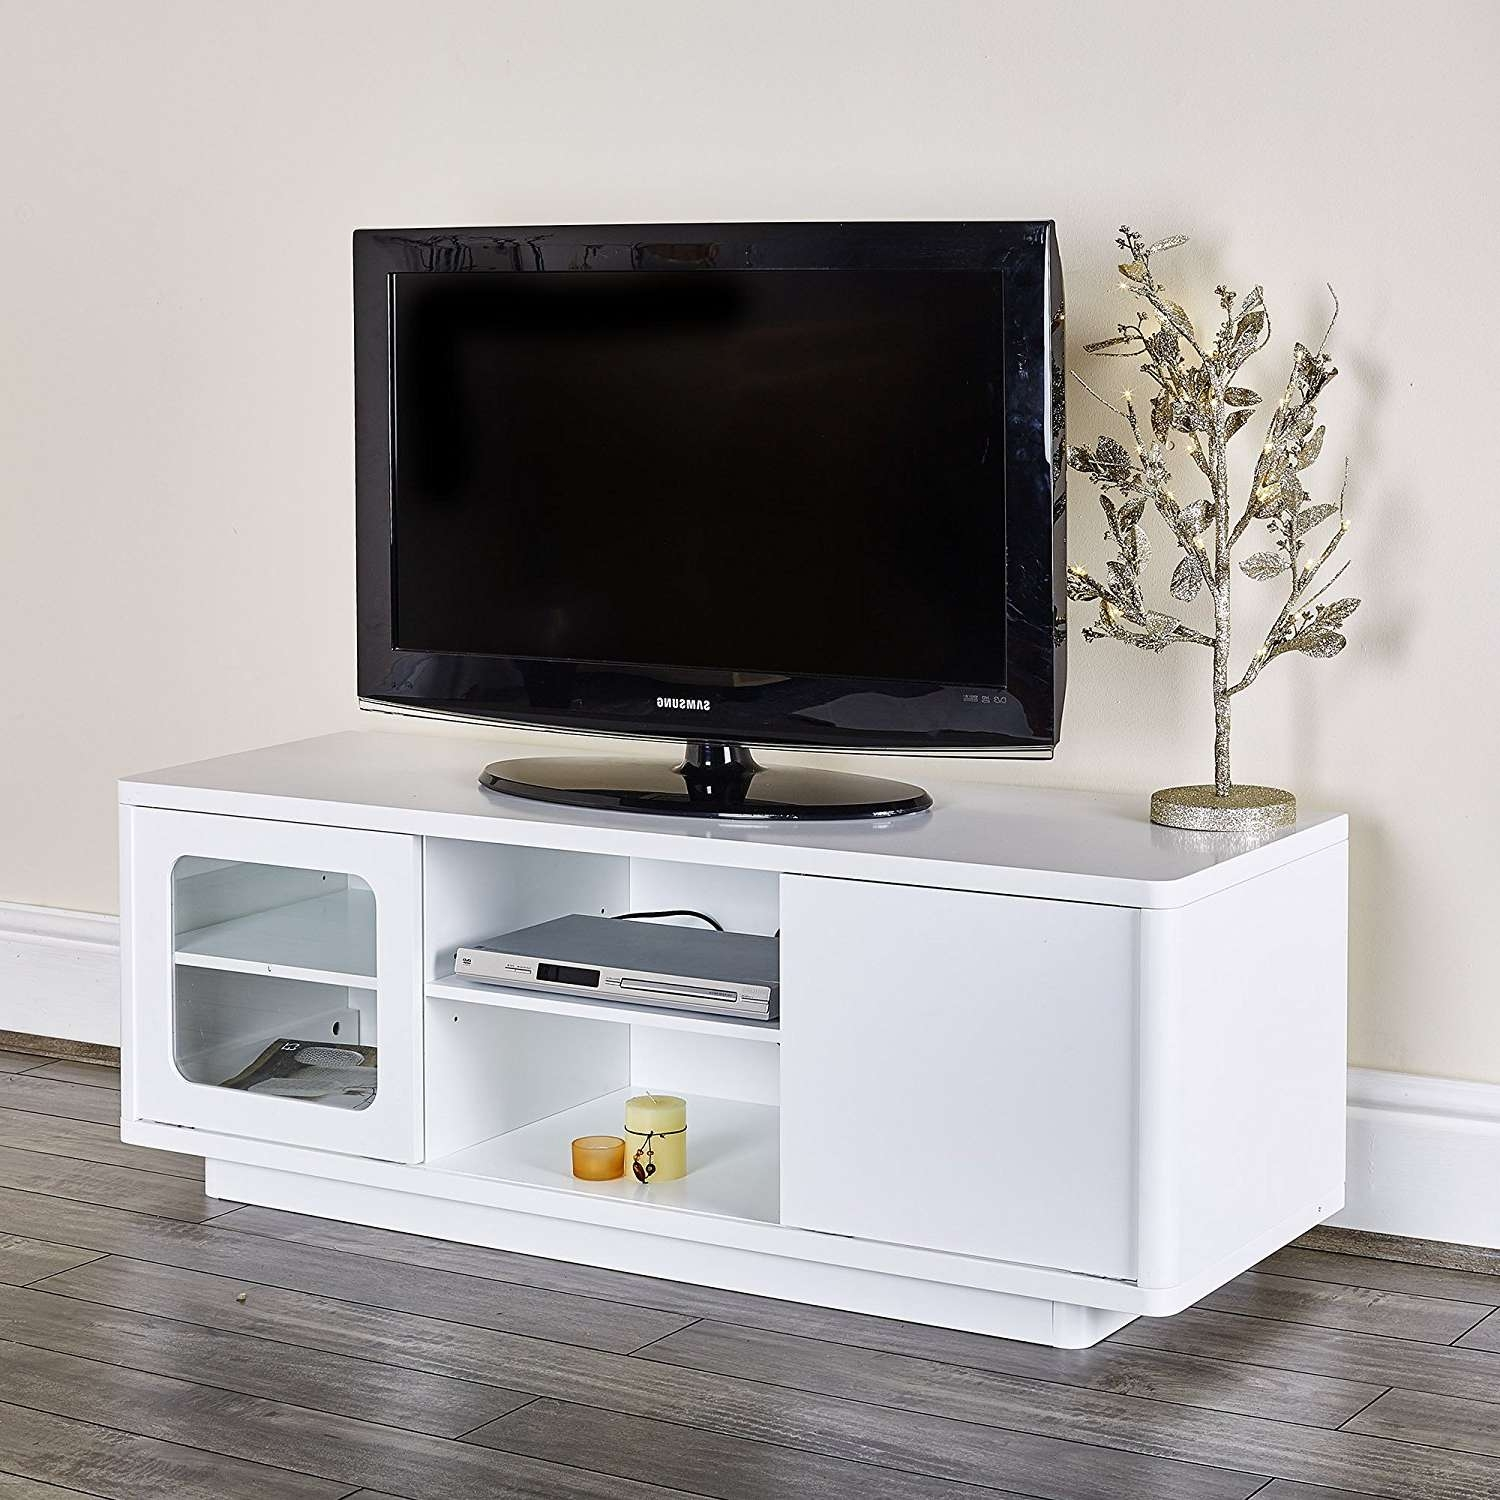 White Tv Cabinet Modern High Gloss Tv Table 2 Drawers Clear Glass Inside White Gloss Tv Stands With Drawers (View 7 of 15)